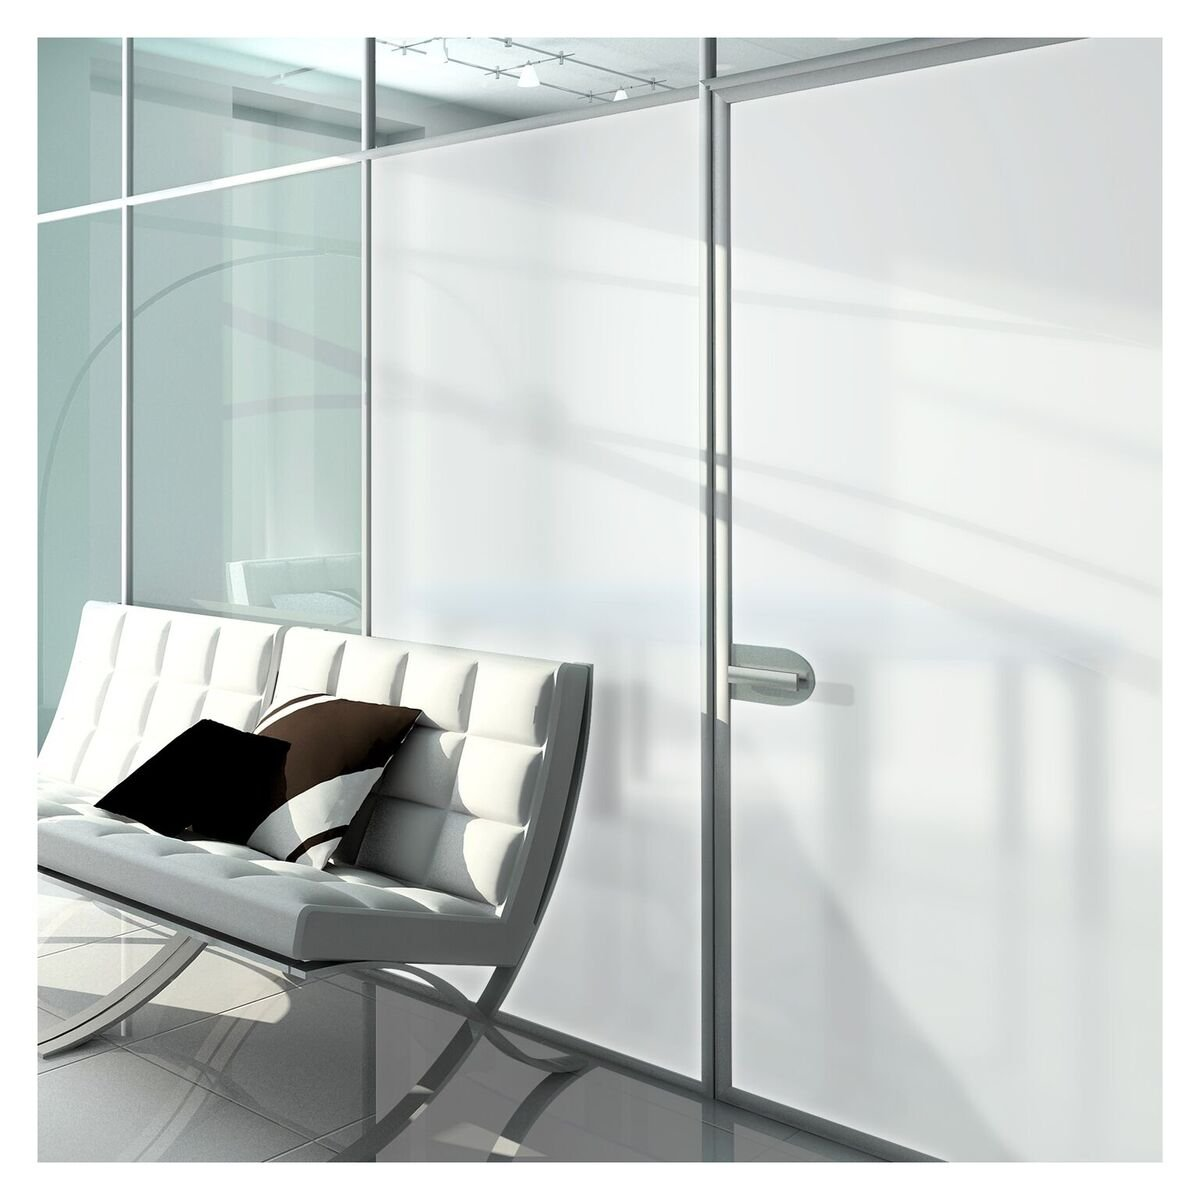 BDF MTWH Window Film White Frosted Privacy (24in X 12ft)